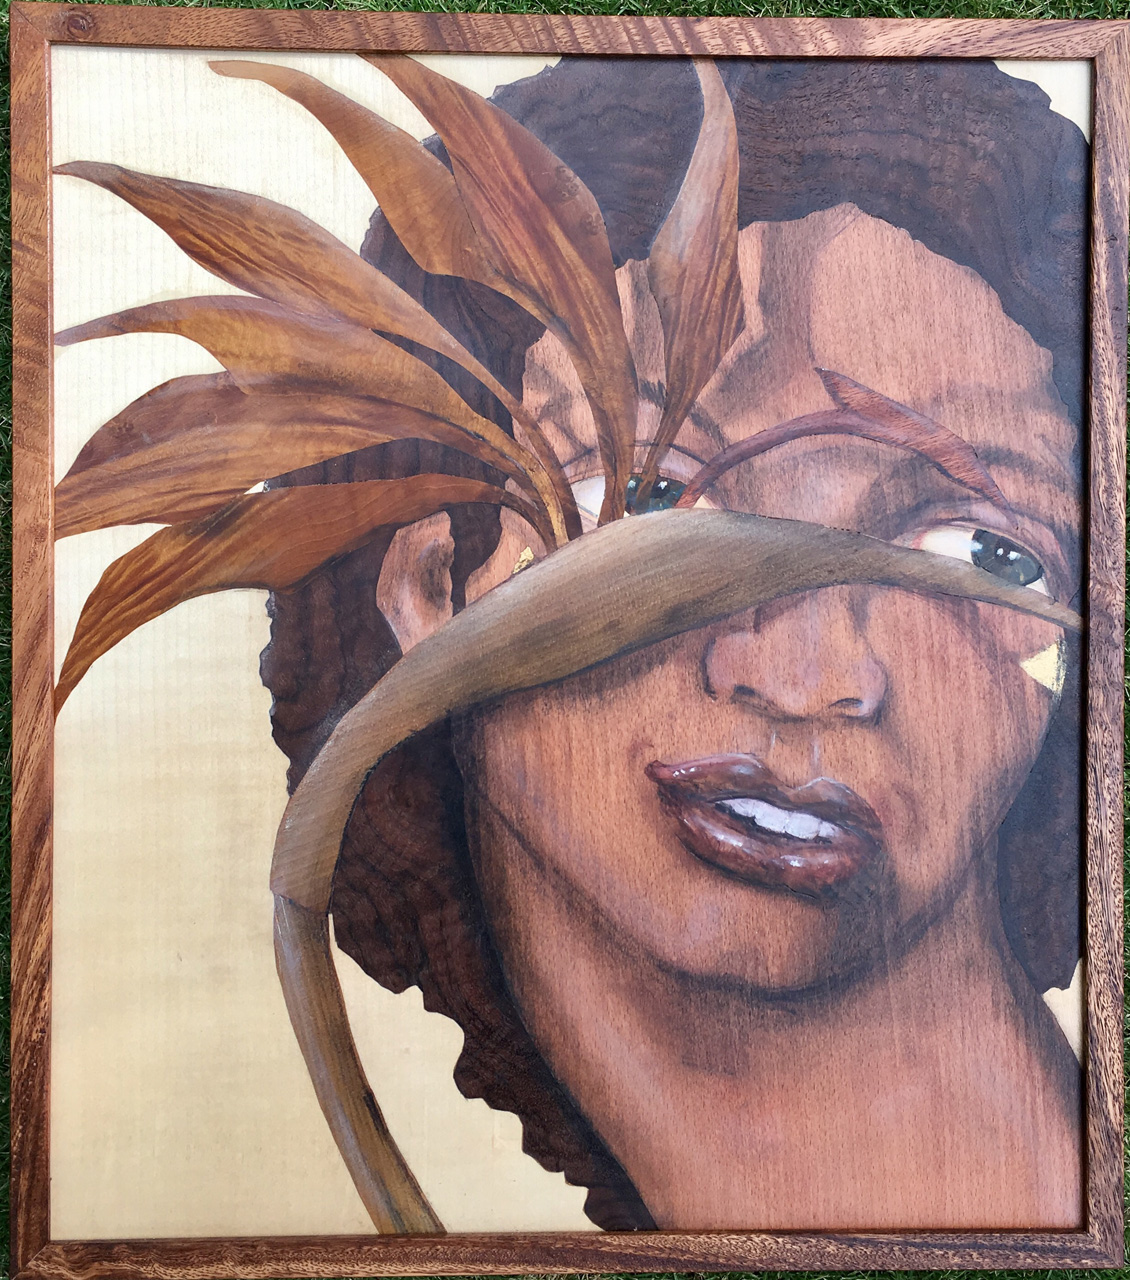 See by Juli Morsella marquetry depicting a man's face behind a bird of paradise plant